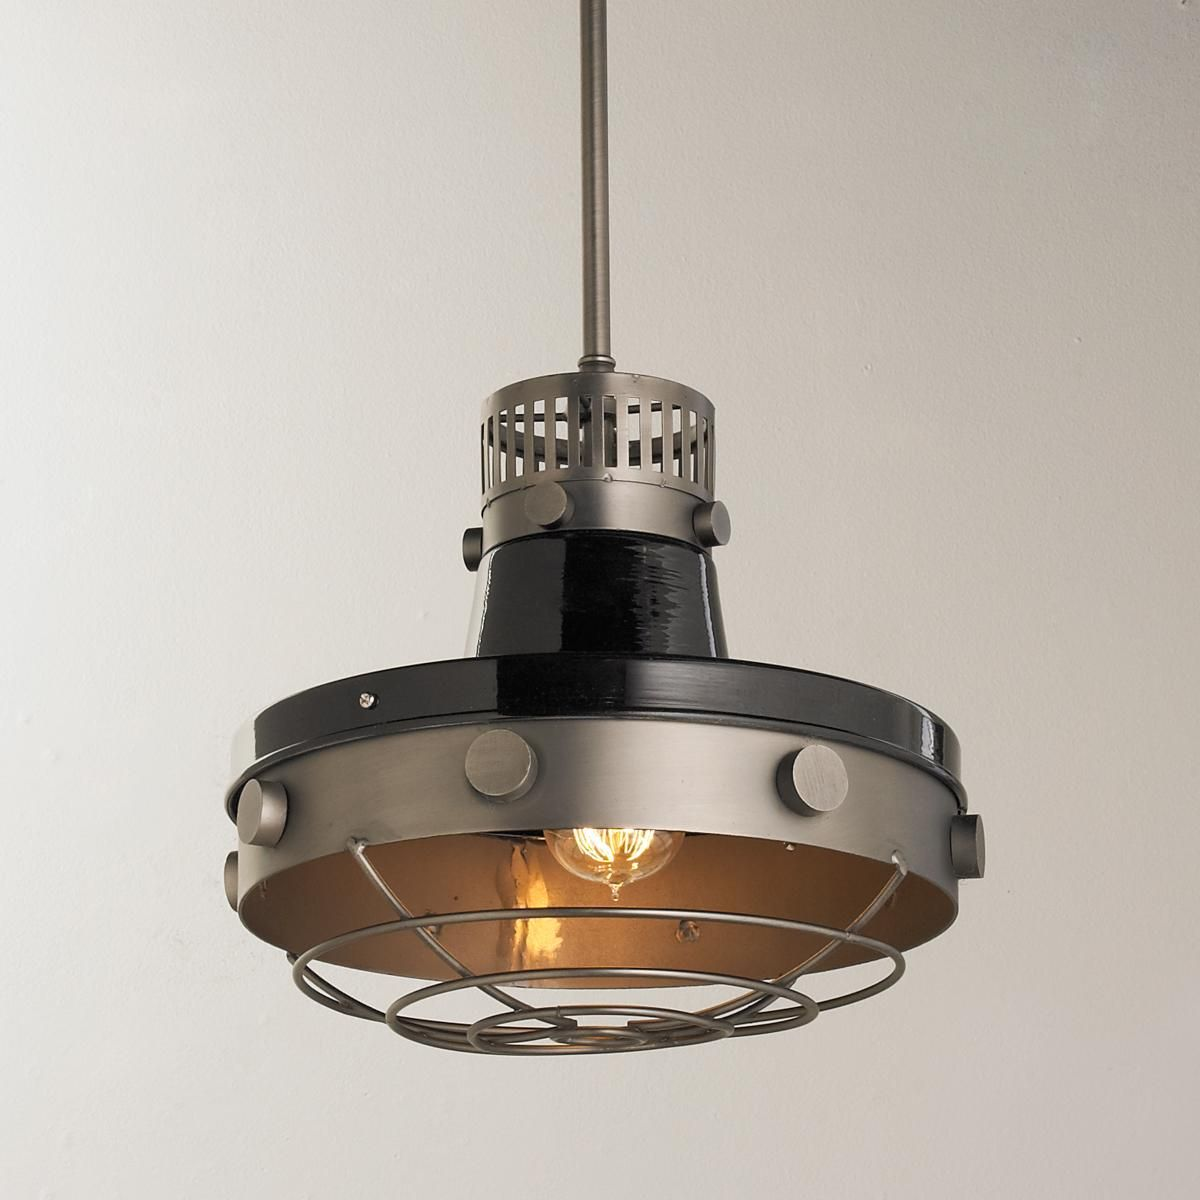 Bolted Industrial Warehouse Pendant Bolts, Gages, Cages